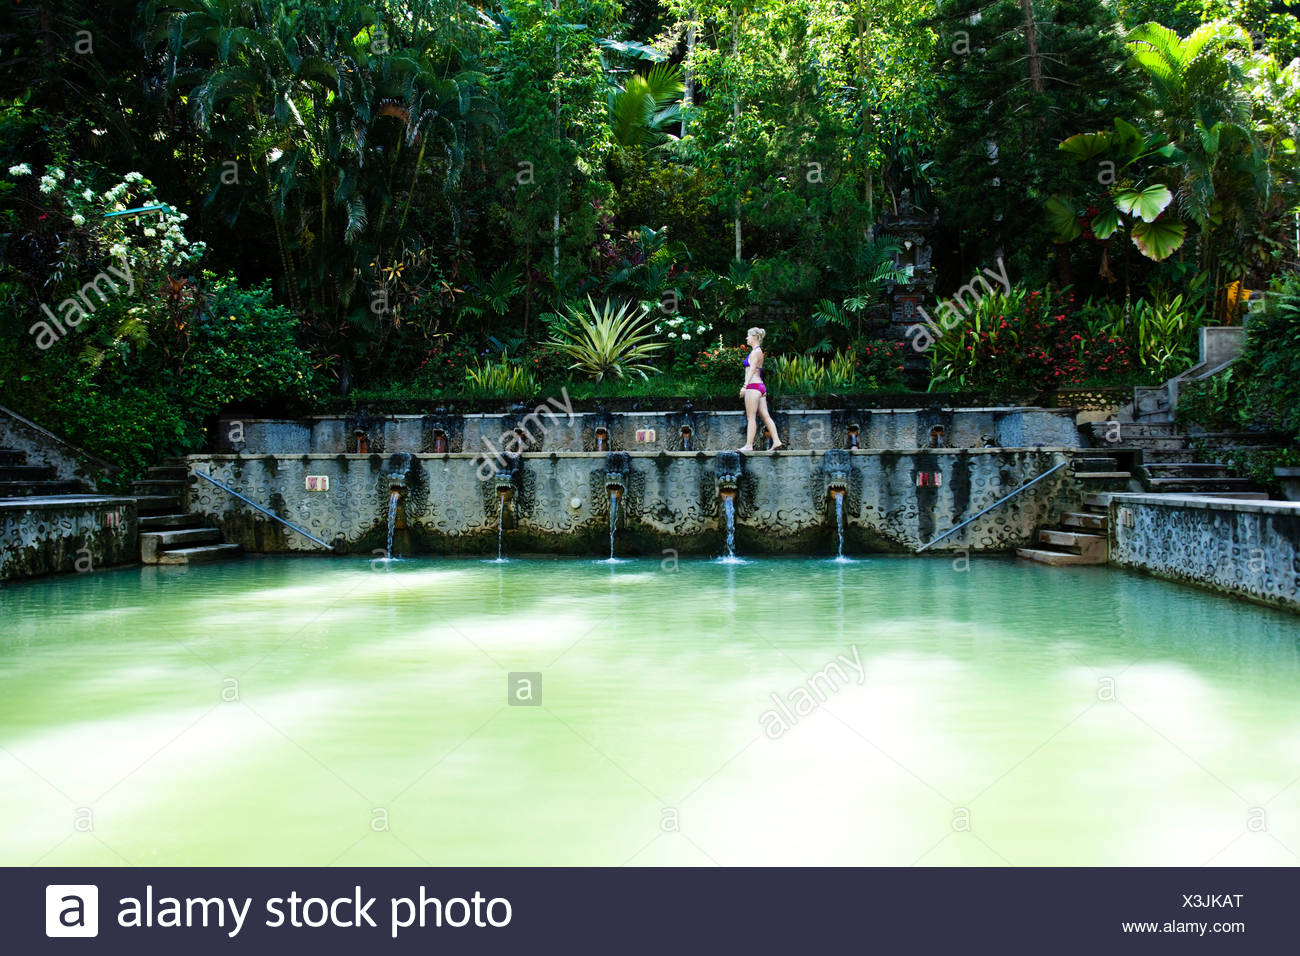 A Beautiful Woman Relaxing Next To A Hot Springs Surrounded By A